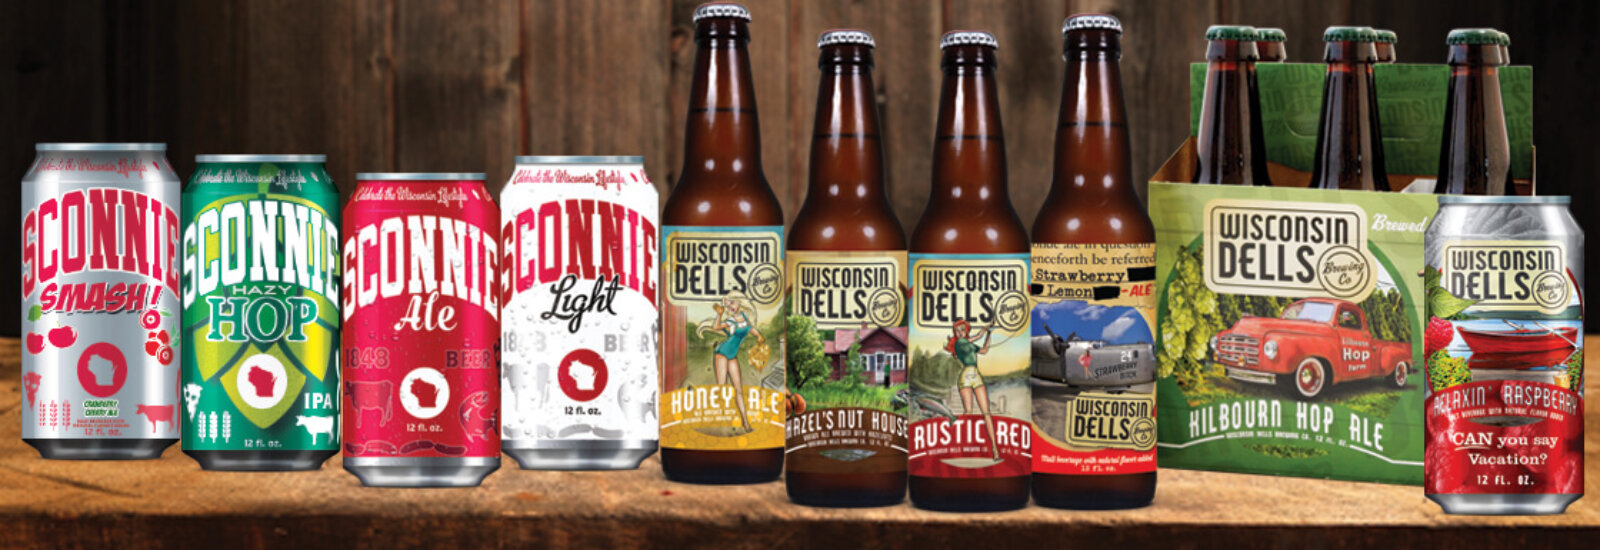 Introducing the Dells Brewing Co. Beer line-up!